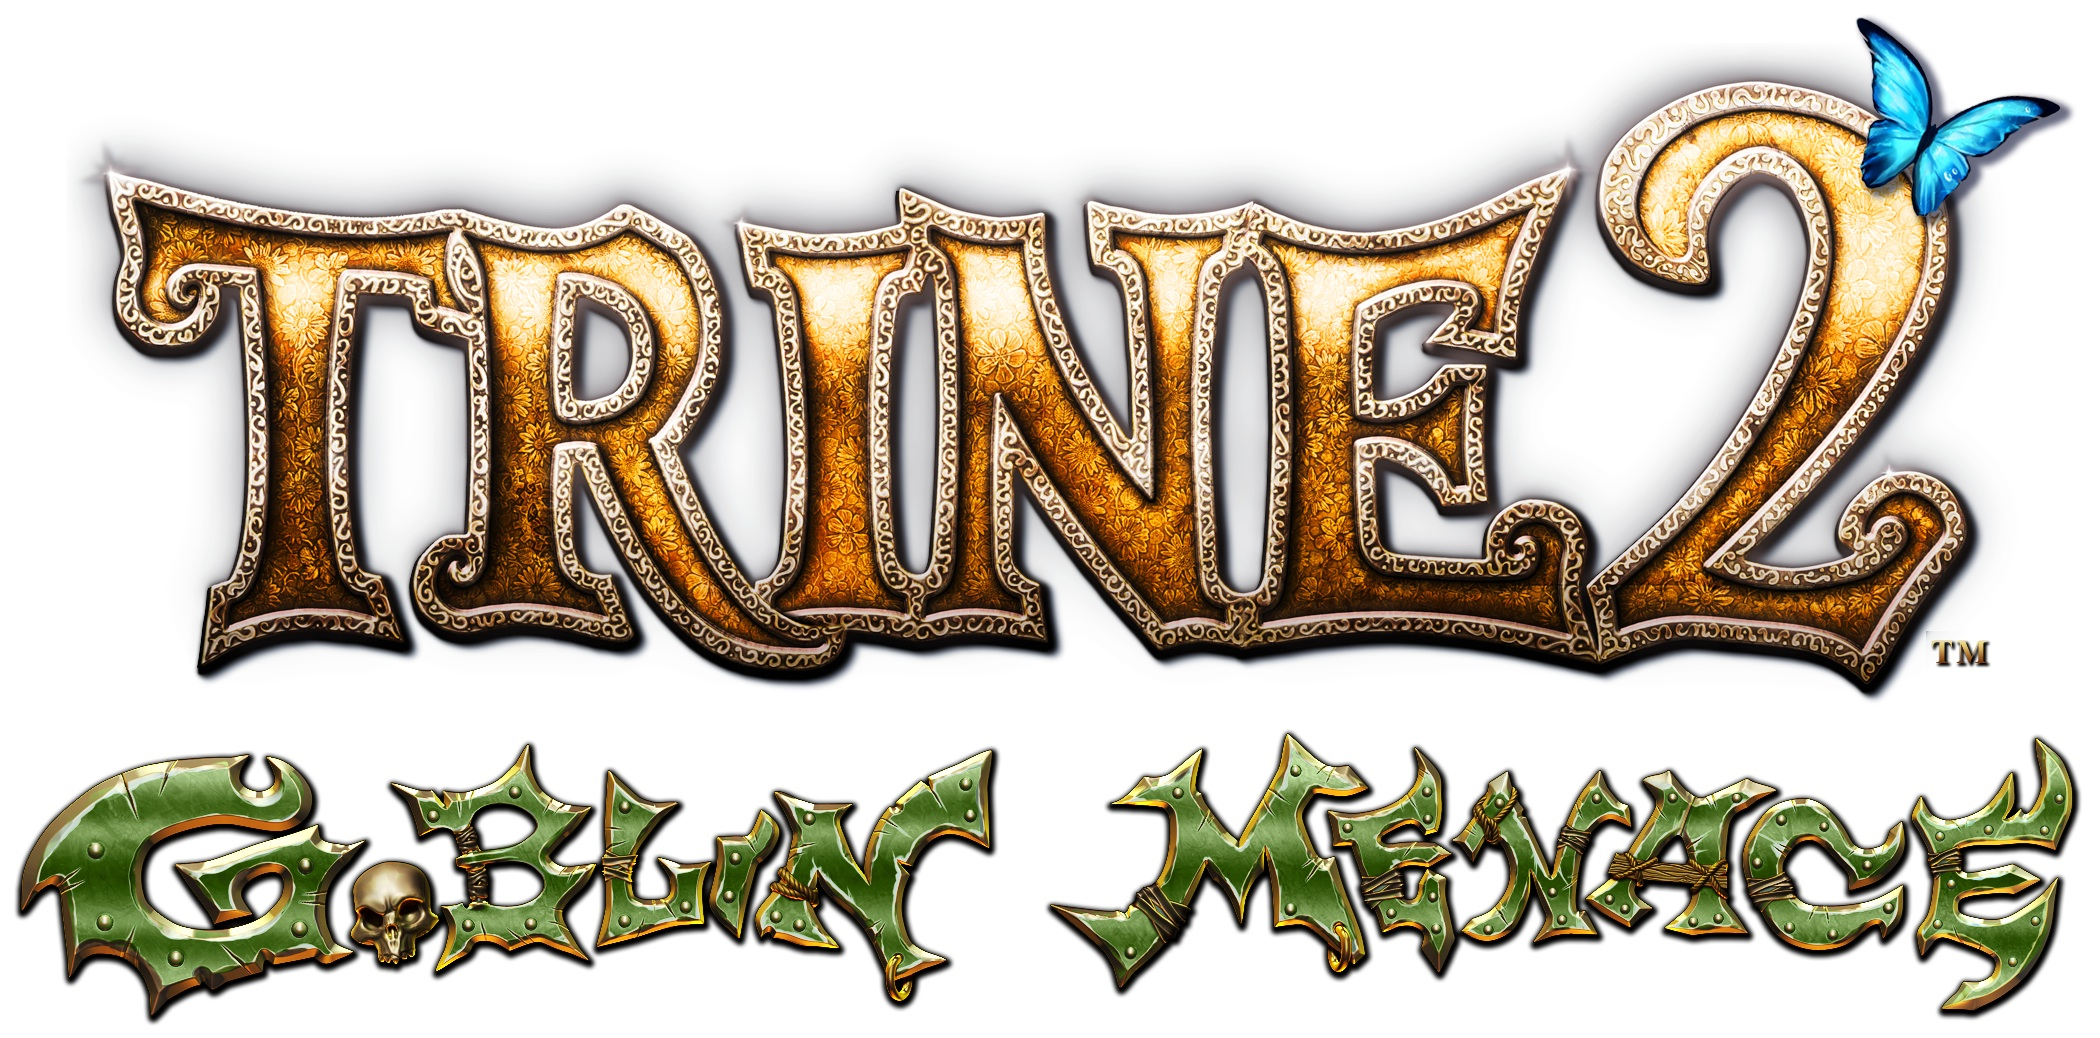 Trine 2 Goblin Menace DLC announced